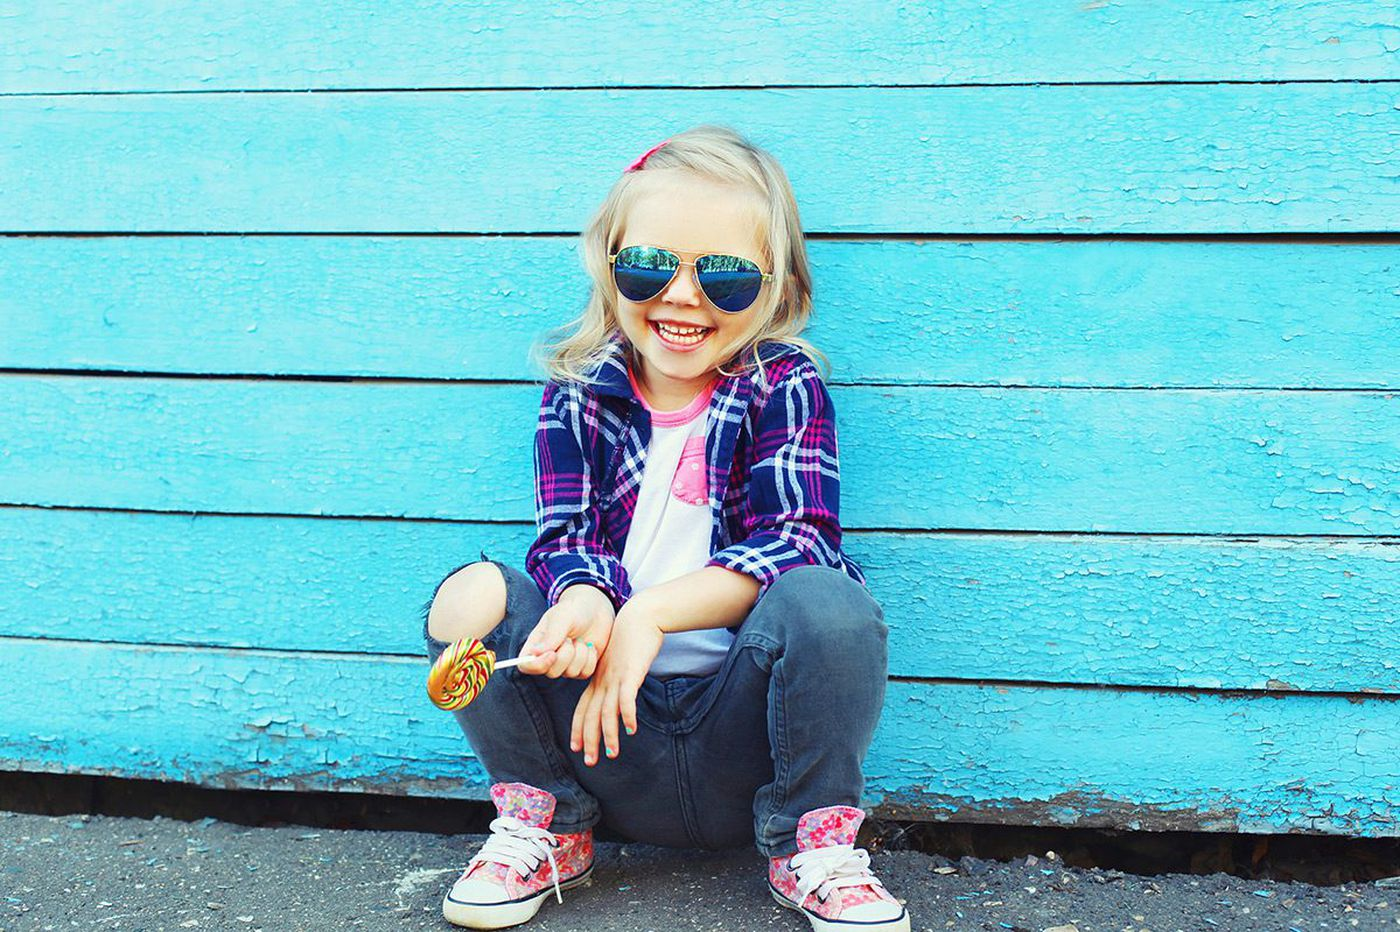 Does your child have the right summer eye protection?